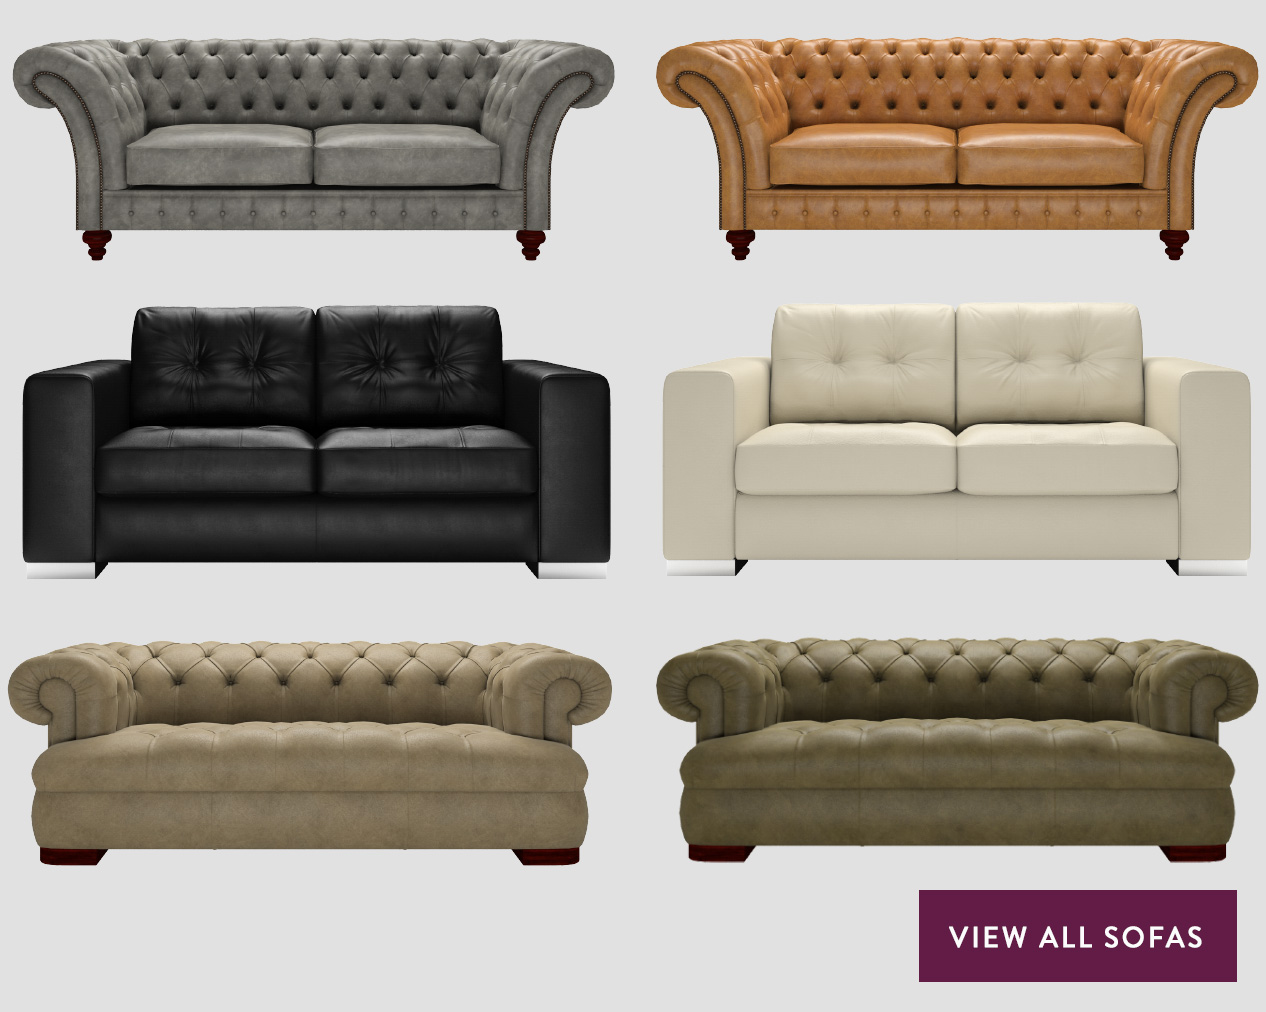 Handmade Sofas Uk Premium Leather Fabric Designs Sofas By Saxon